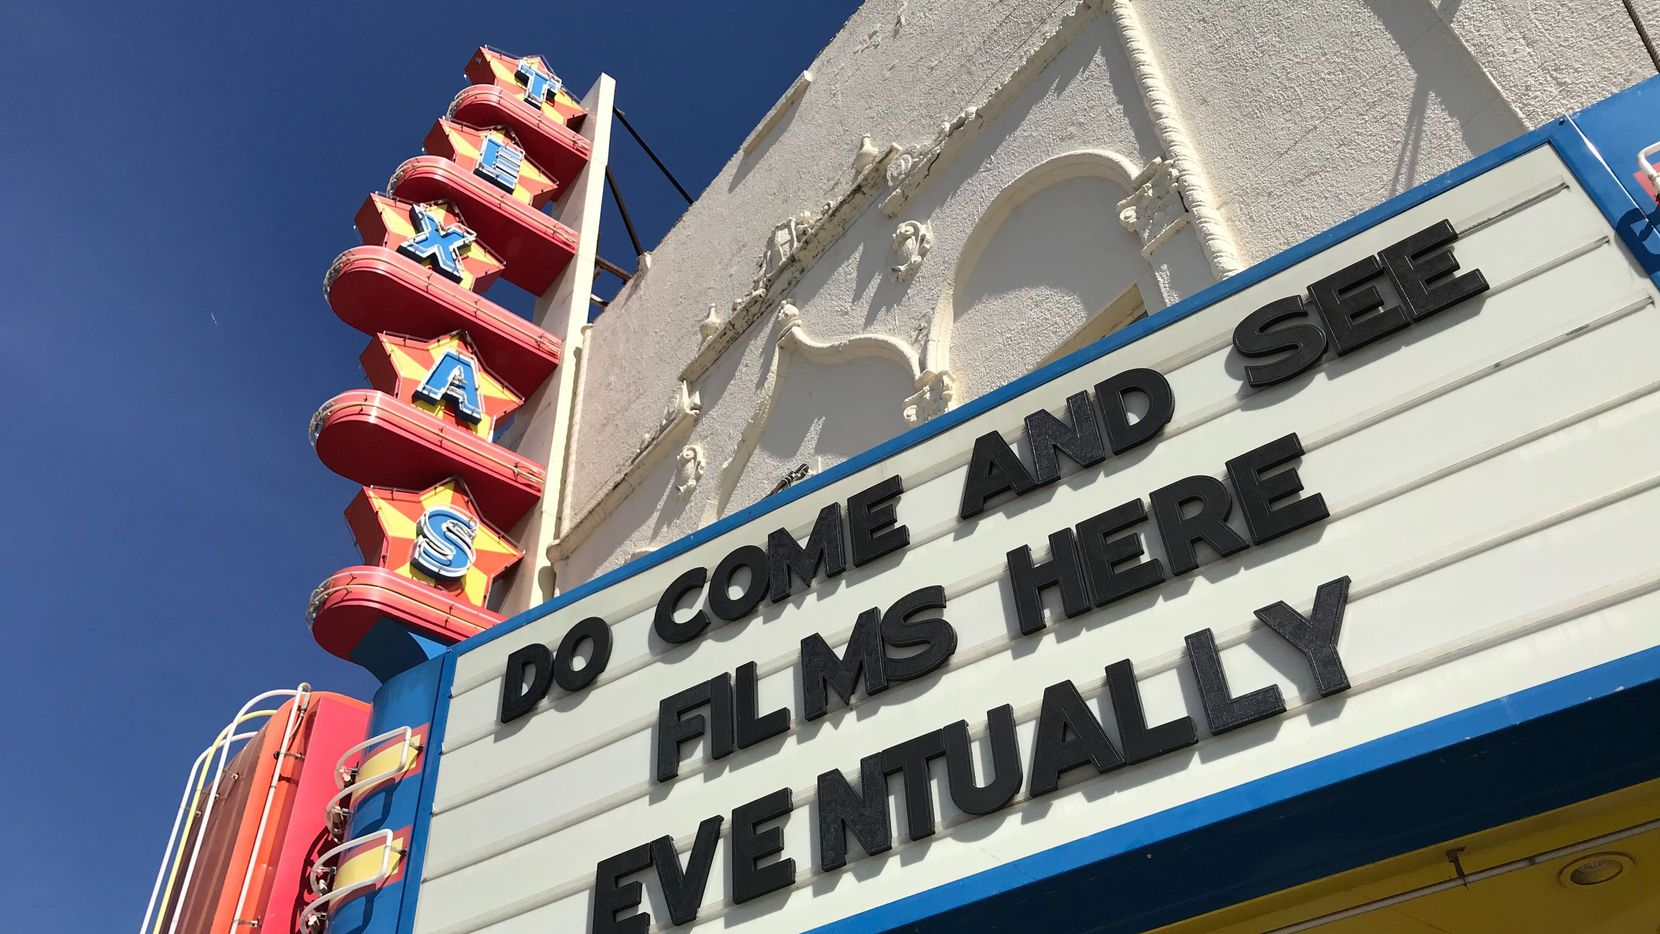 """""""Do come and see films here ... eventually,"""" the Texas Theatre marquee said in May. The theater has been screening drive-in movies for months, and on Oct. 24, it will reopen its doors for two limited-capacity screenings of the original """"A Nightmare on Elm Street."""""""